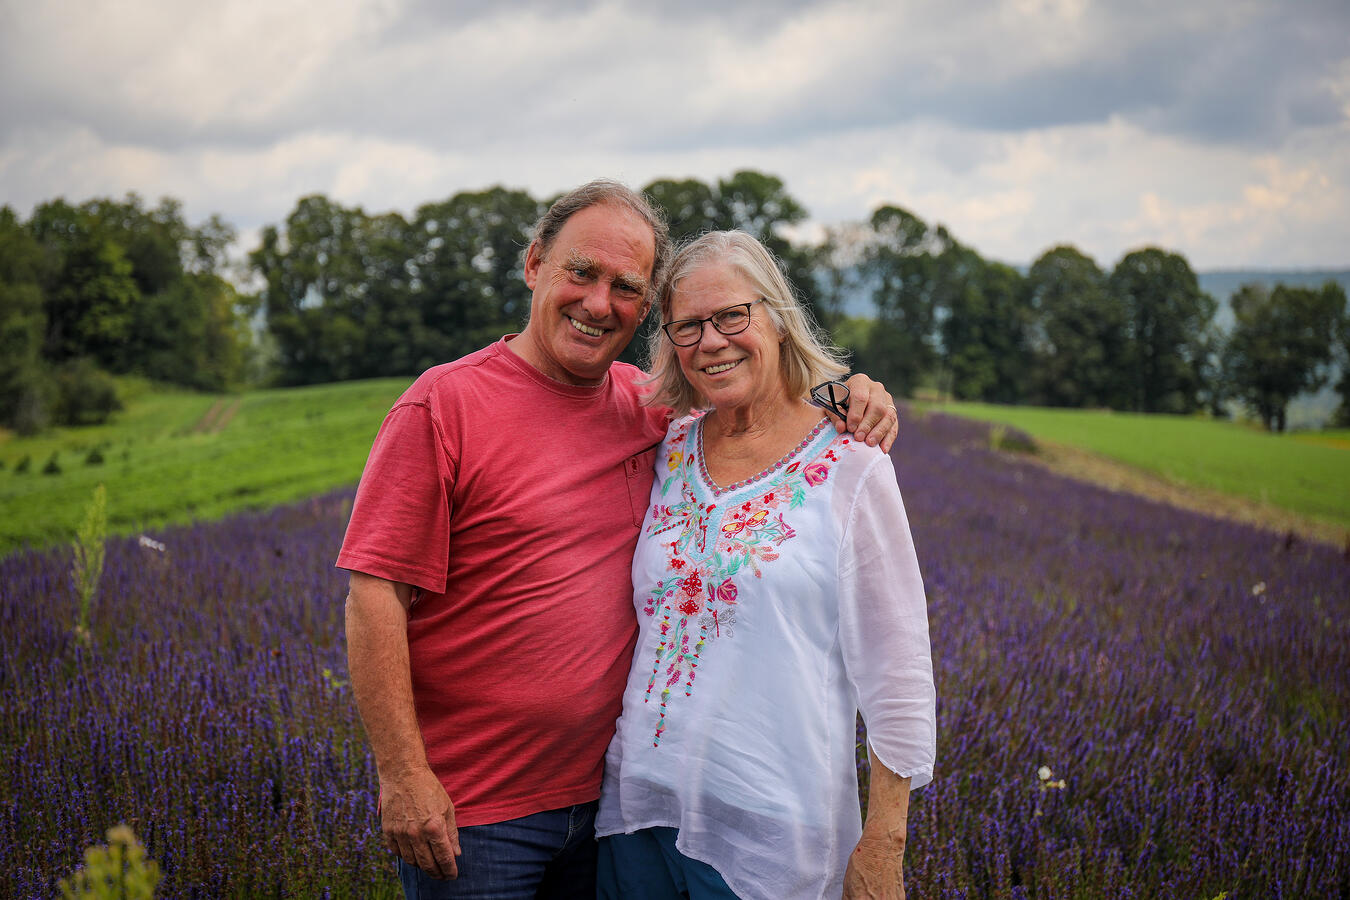 The owners of Foster Farm on their land in Vermont.